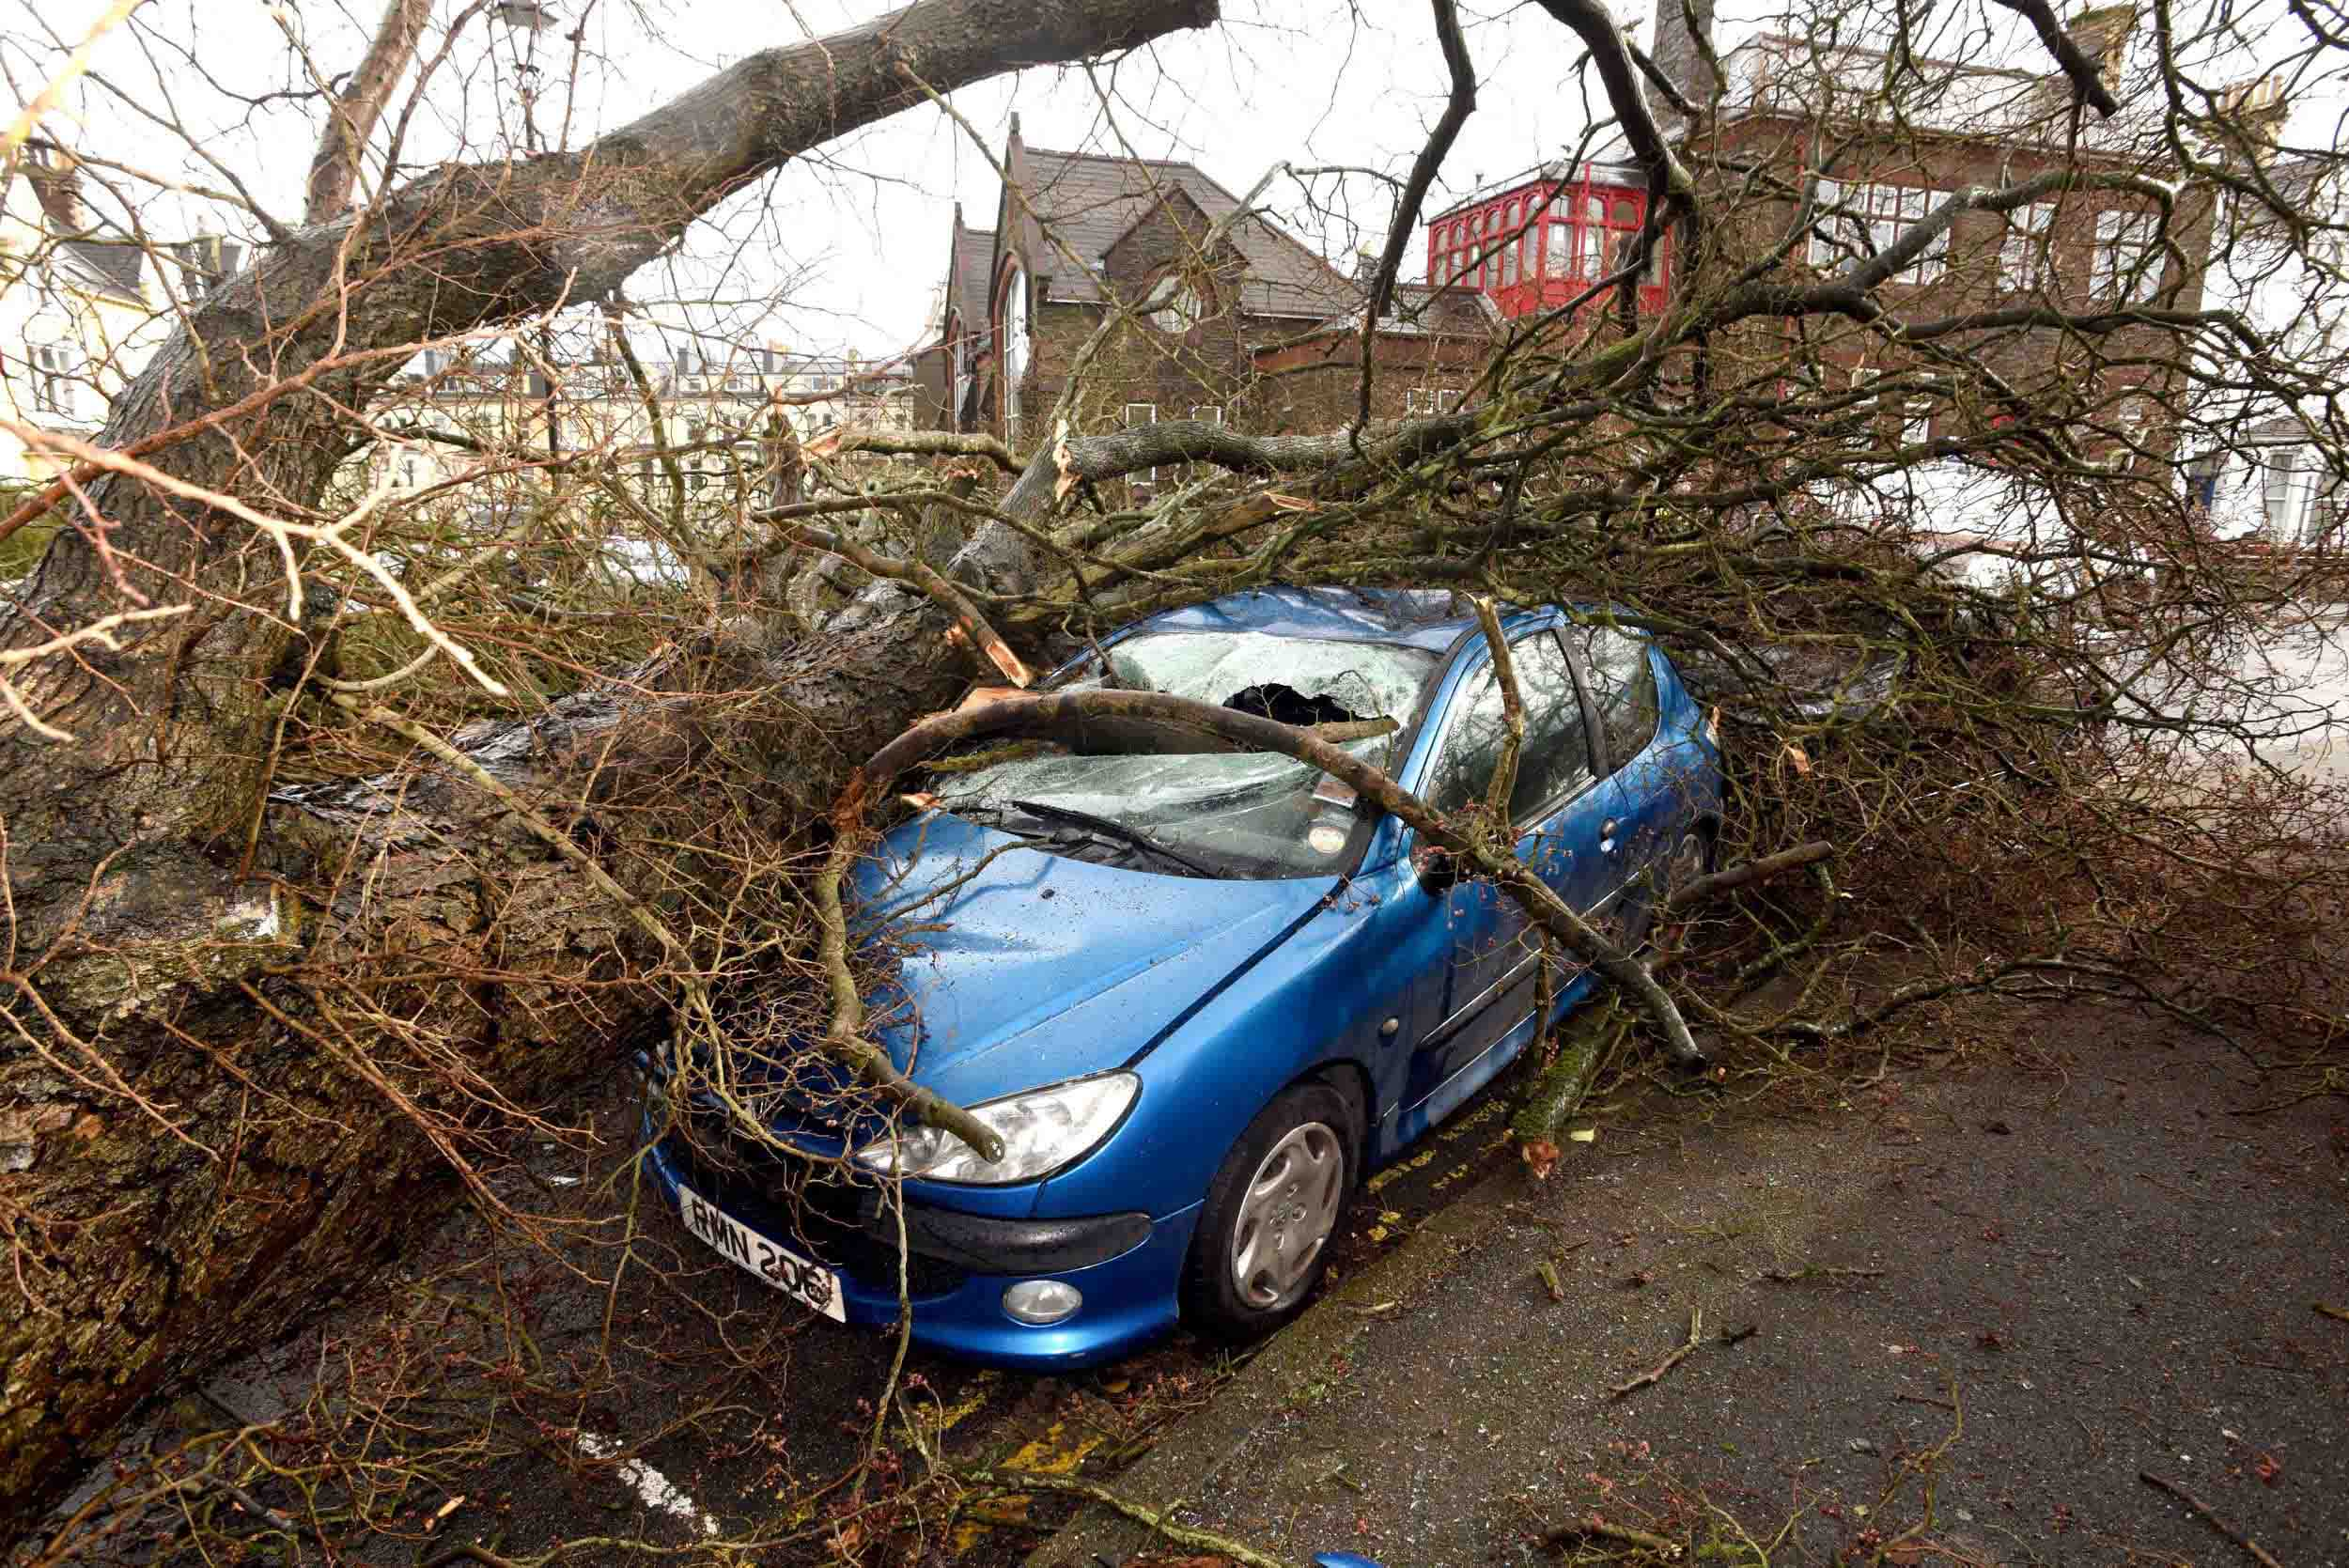 Damage to cars from a fallen tree in the aftermath of Storm Doris